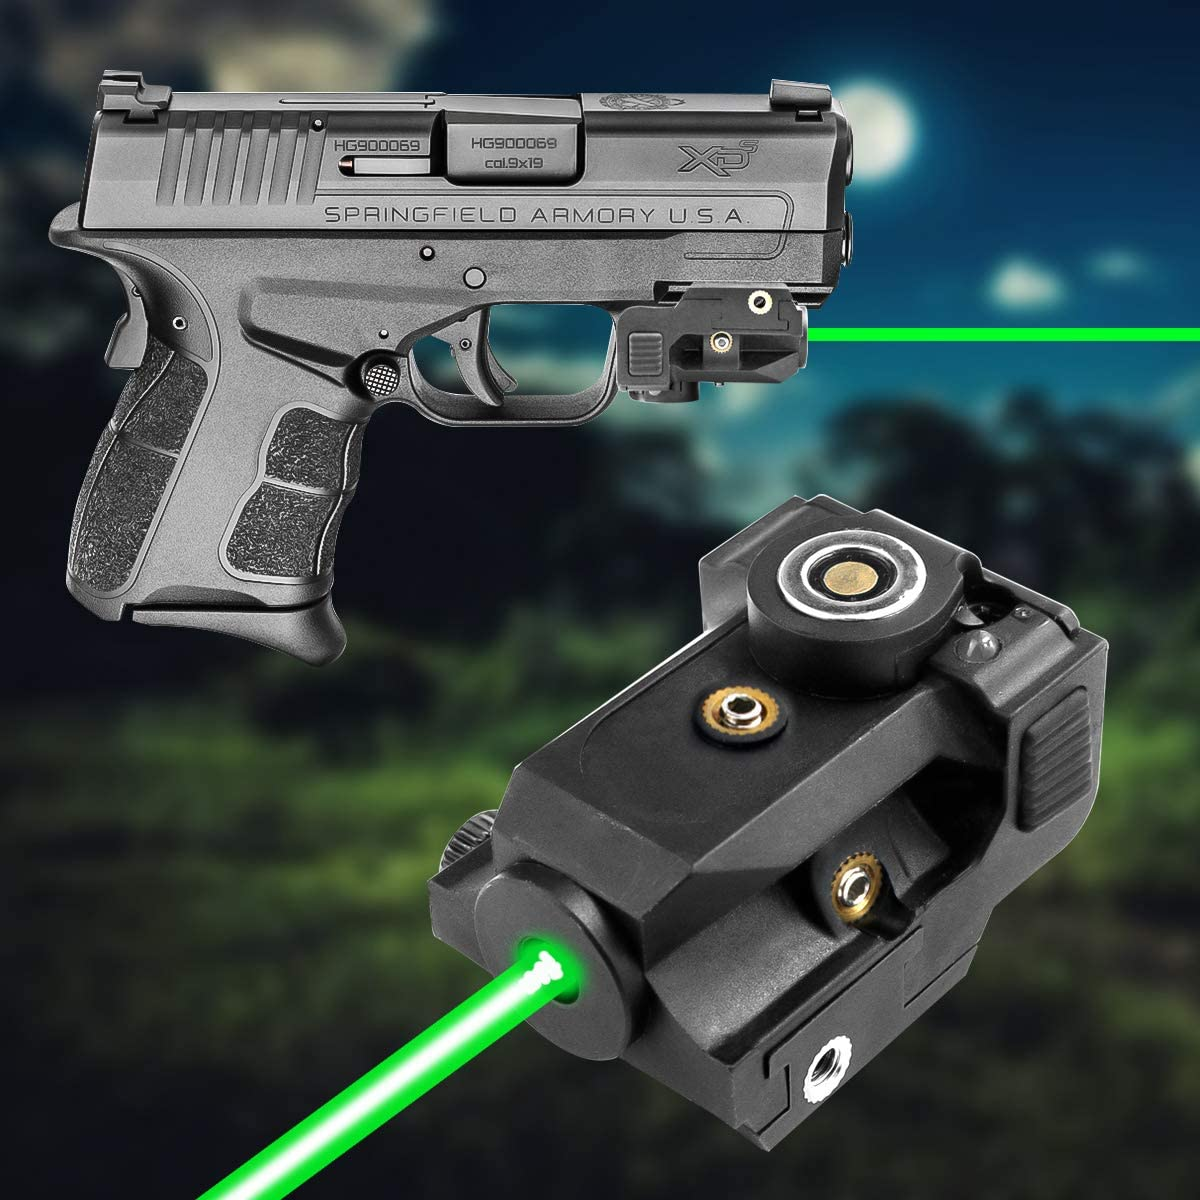 Lasercross LS01G Magnetic Touch Charging Green Laser Sight,Ultra Compact Tactical Pistol Laser,Shockproof Green Dot Sight Used for Pistols and Rifles That Built with 21mm Standard Picatinny Rails